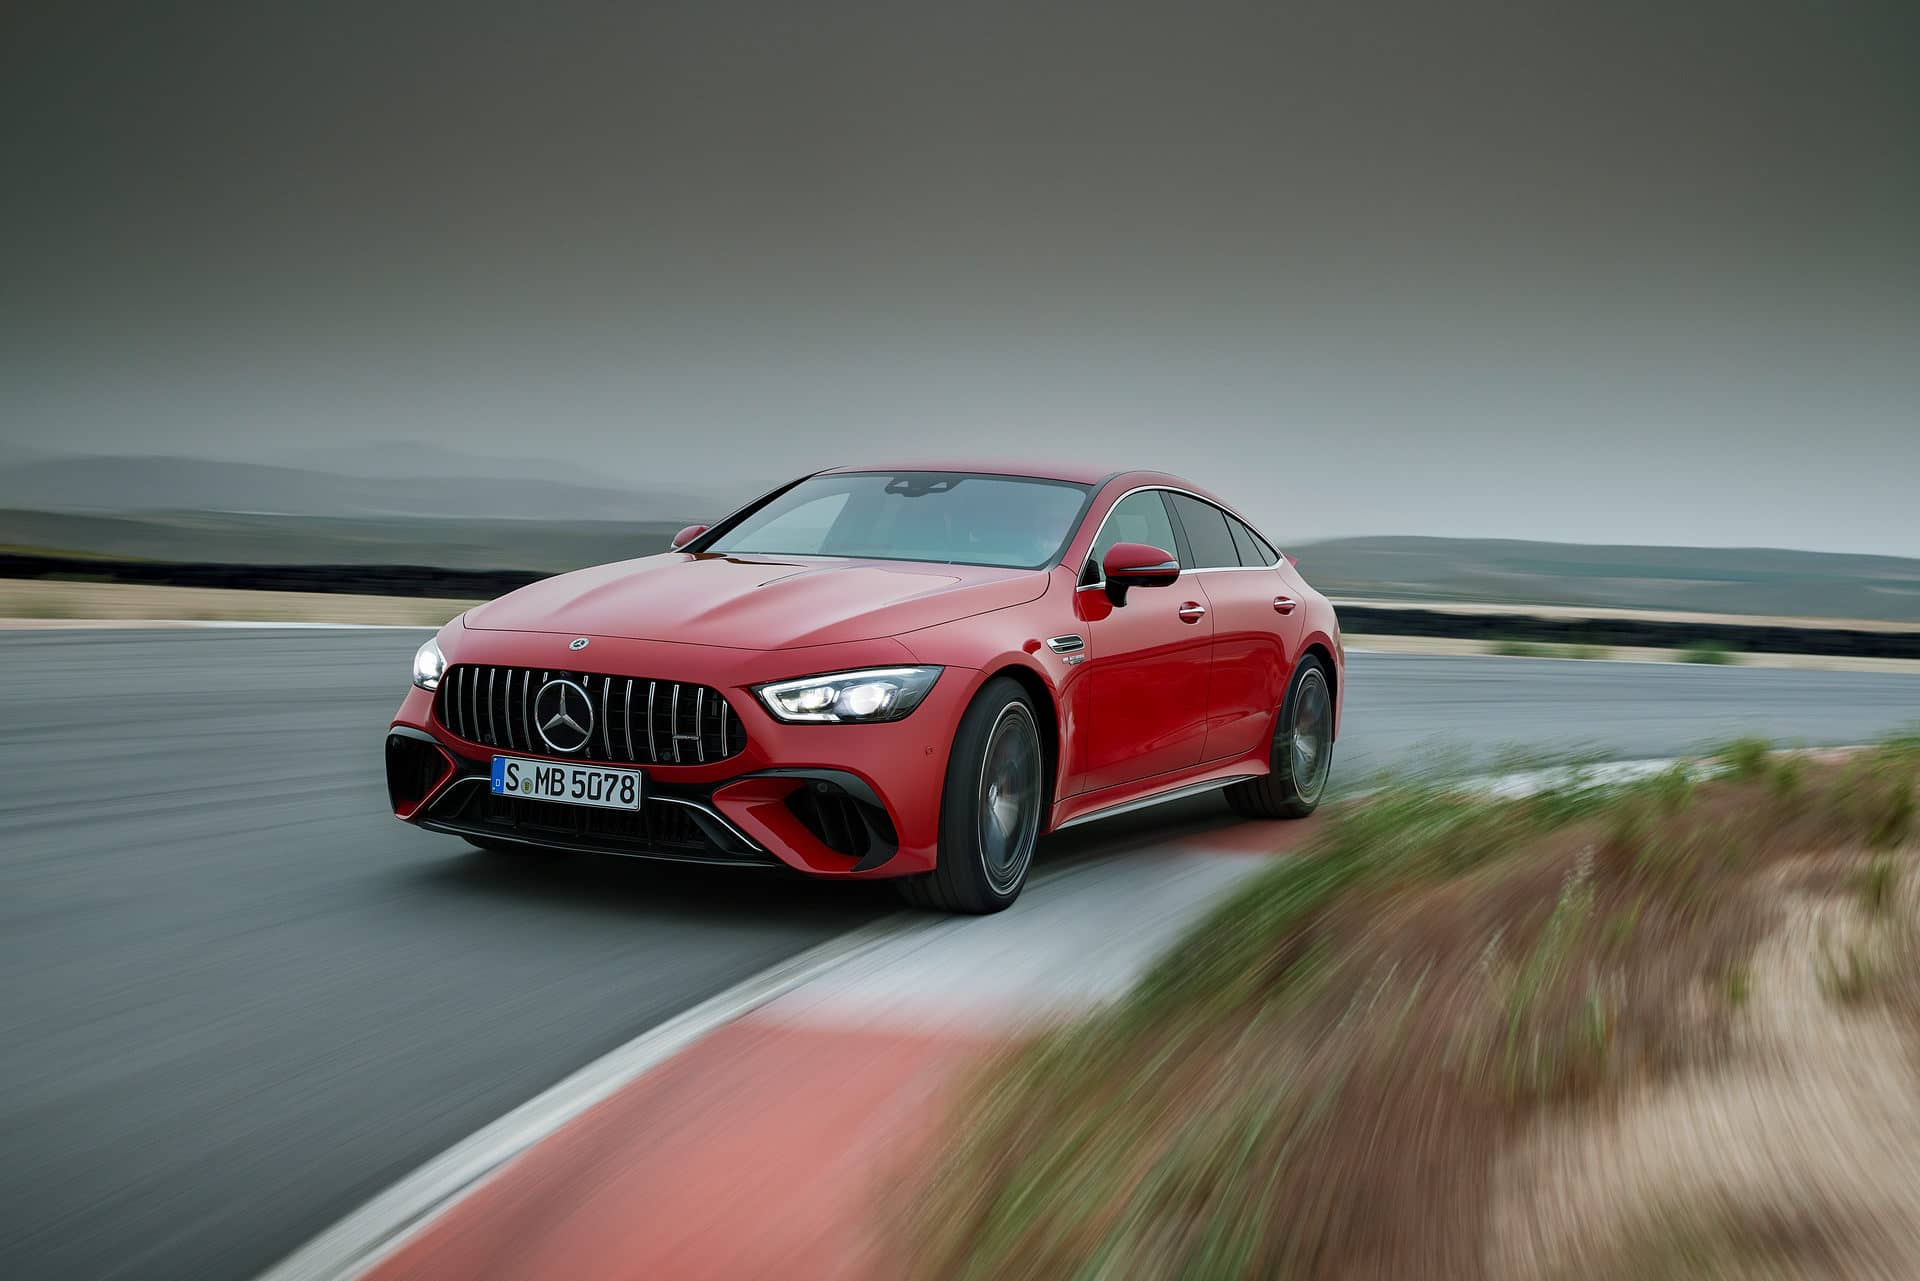 mercedes-amg gt 63 s eperformance (2)